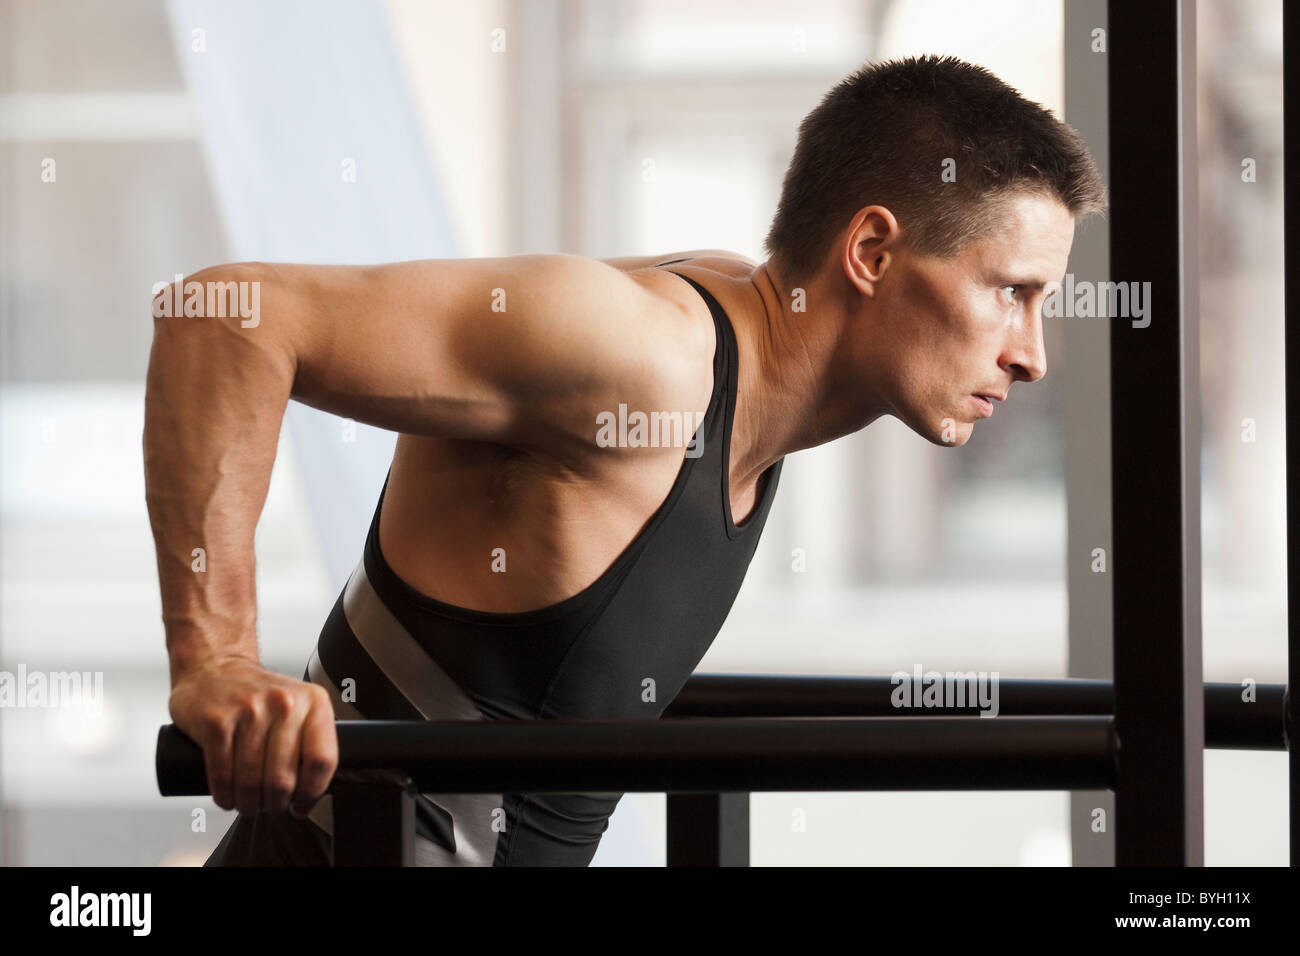 Male athlete using gymnastics equipment in gym - Stock Image